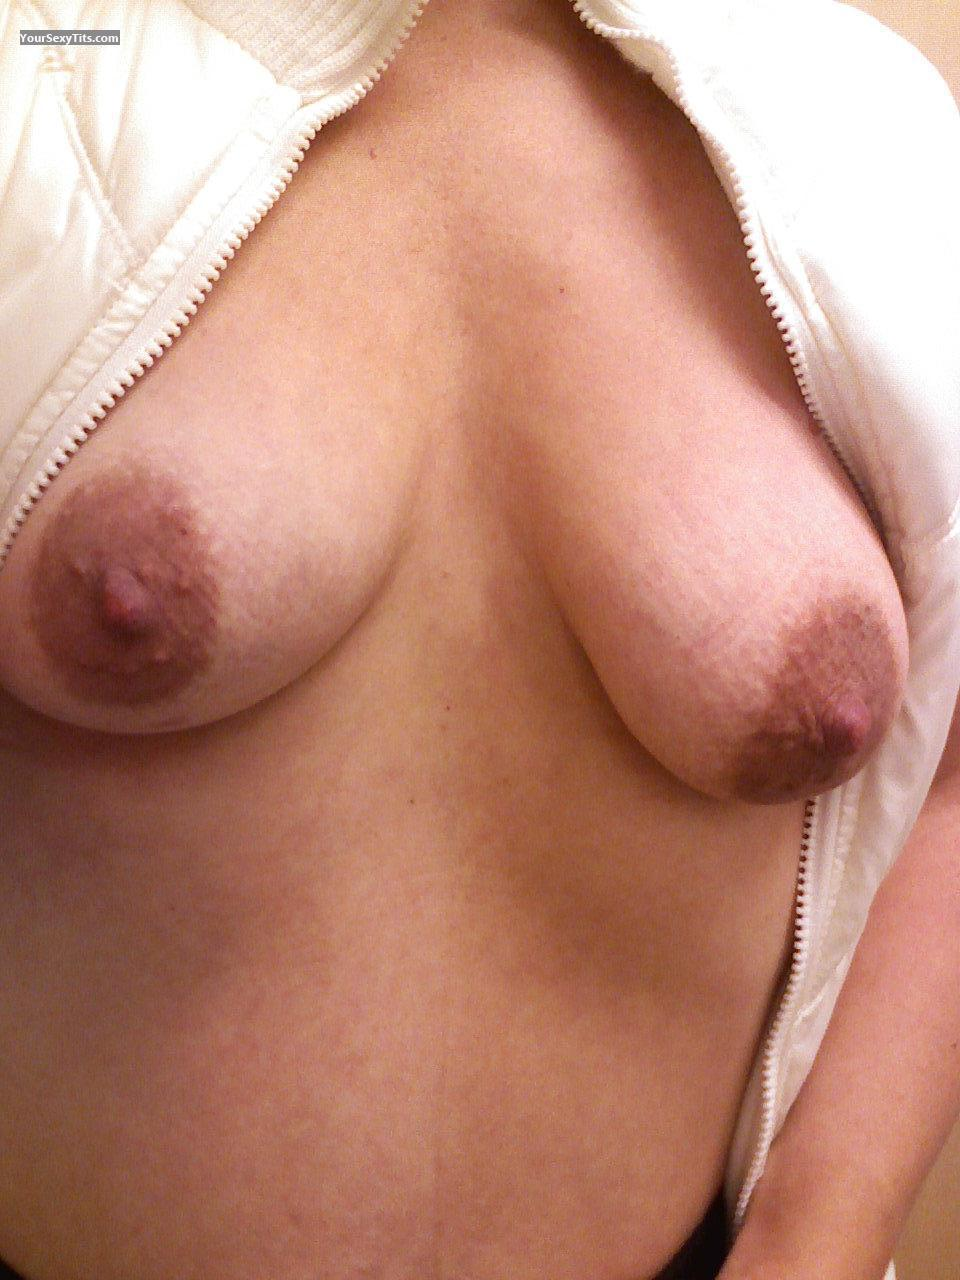 Tit Flash: My Small Tits (Selfie) - Tatas from United States